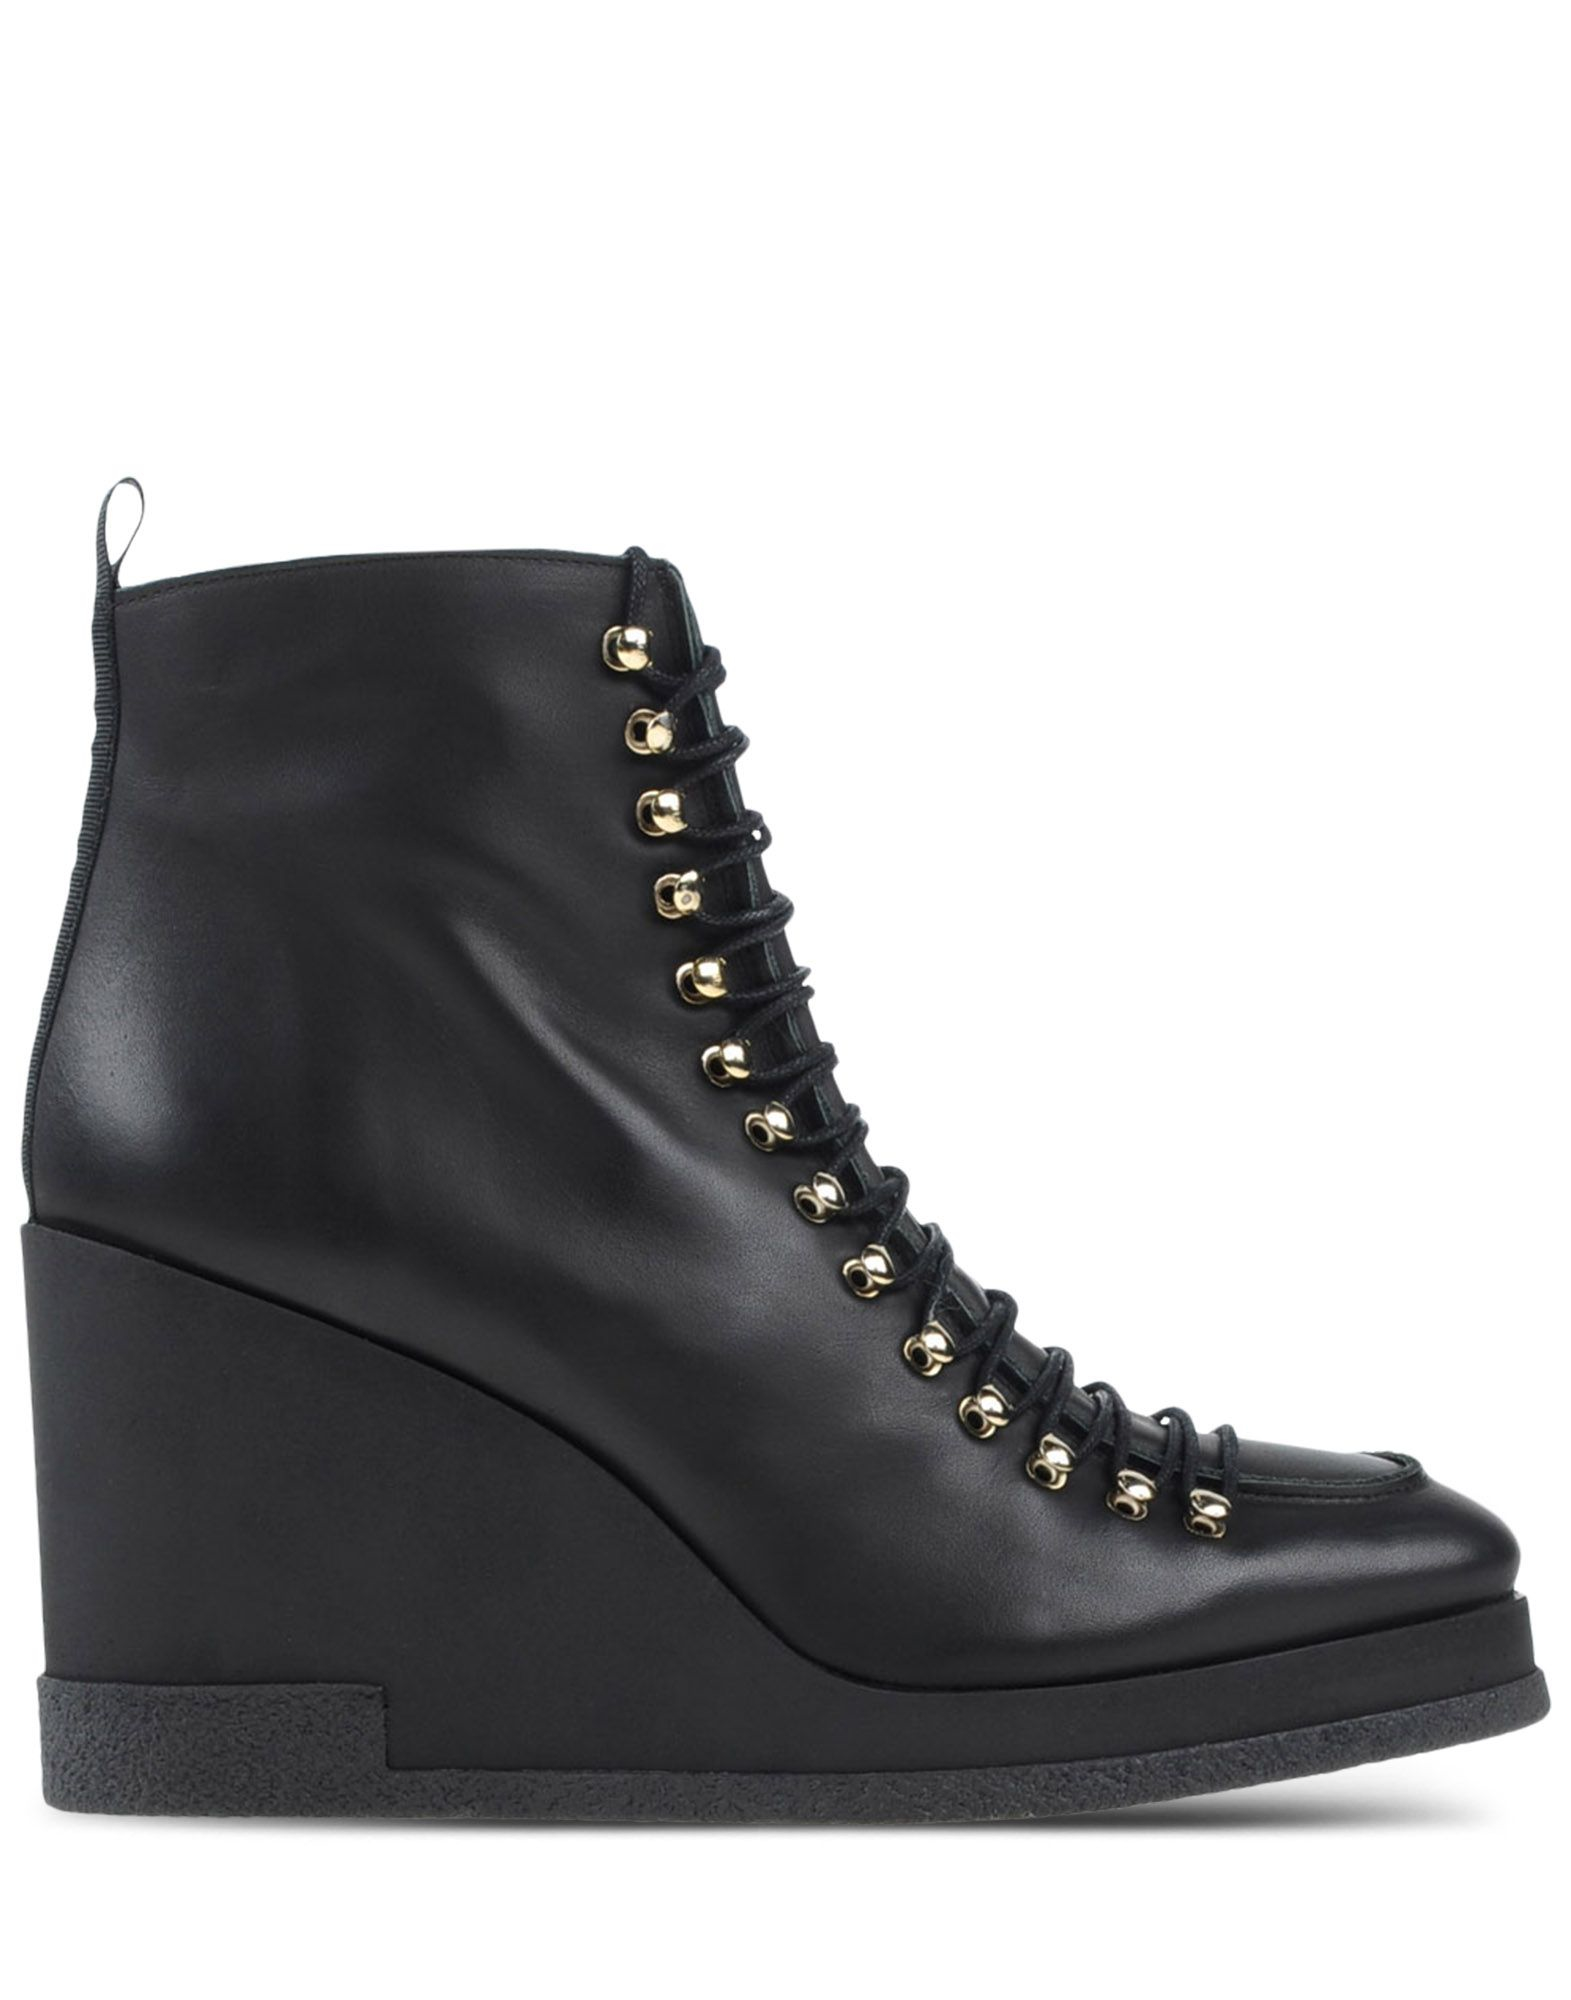 miista leather wedge ankle boots in black lyst